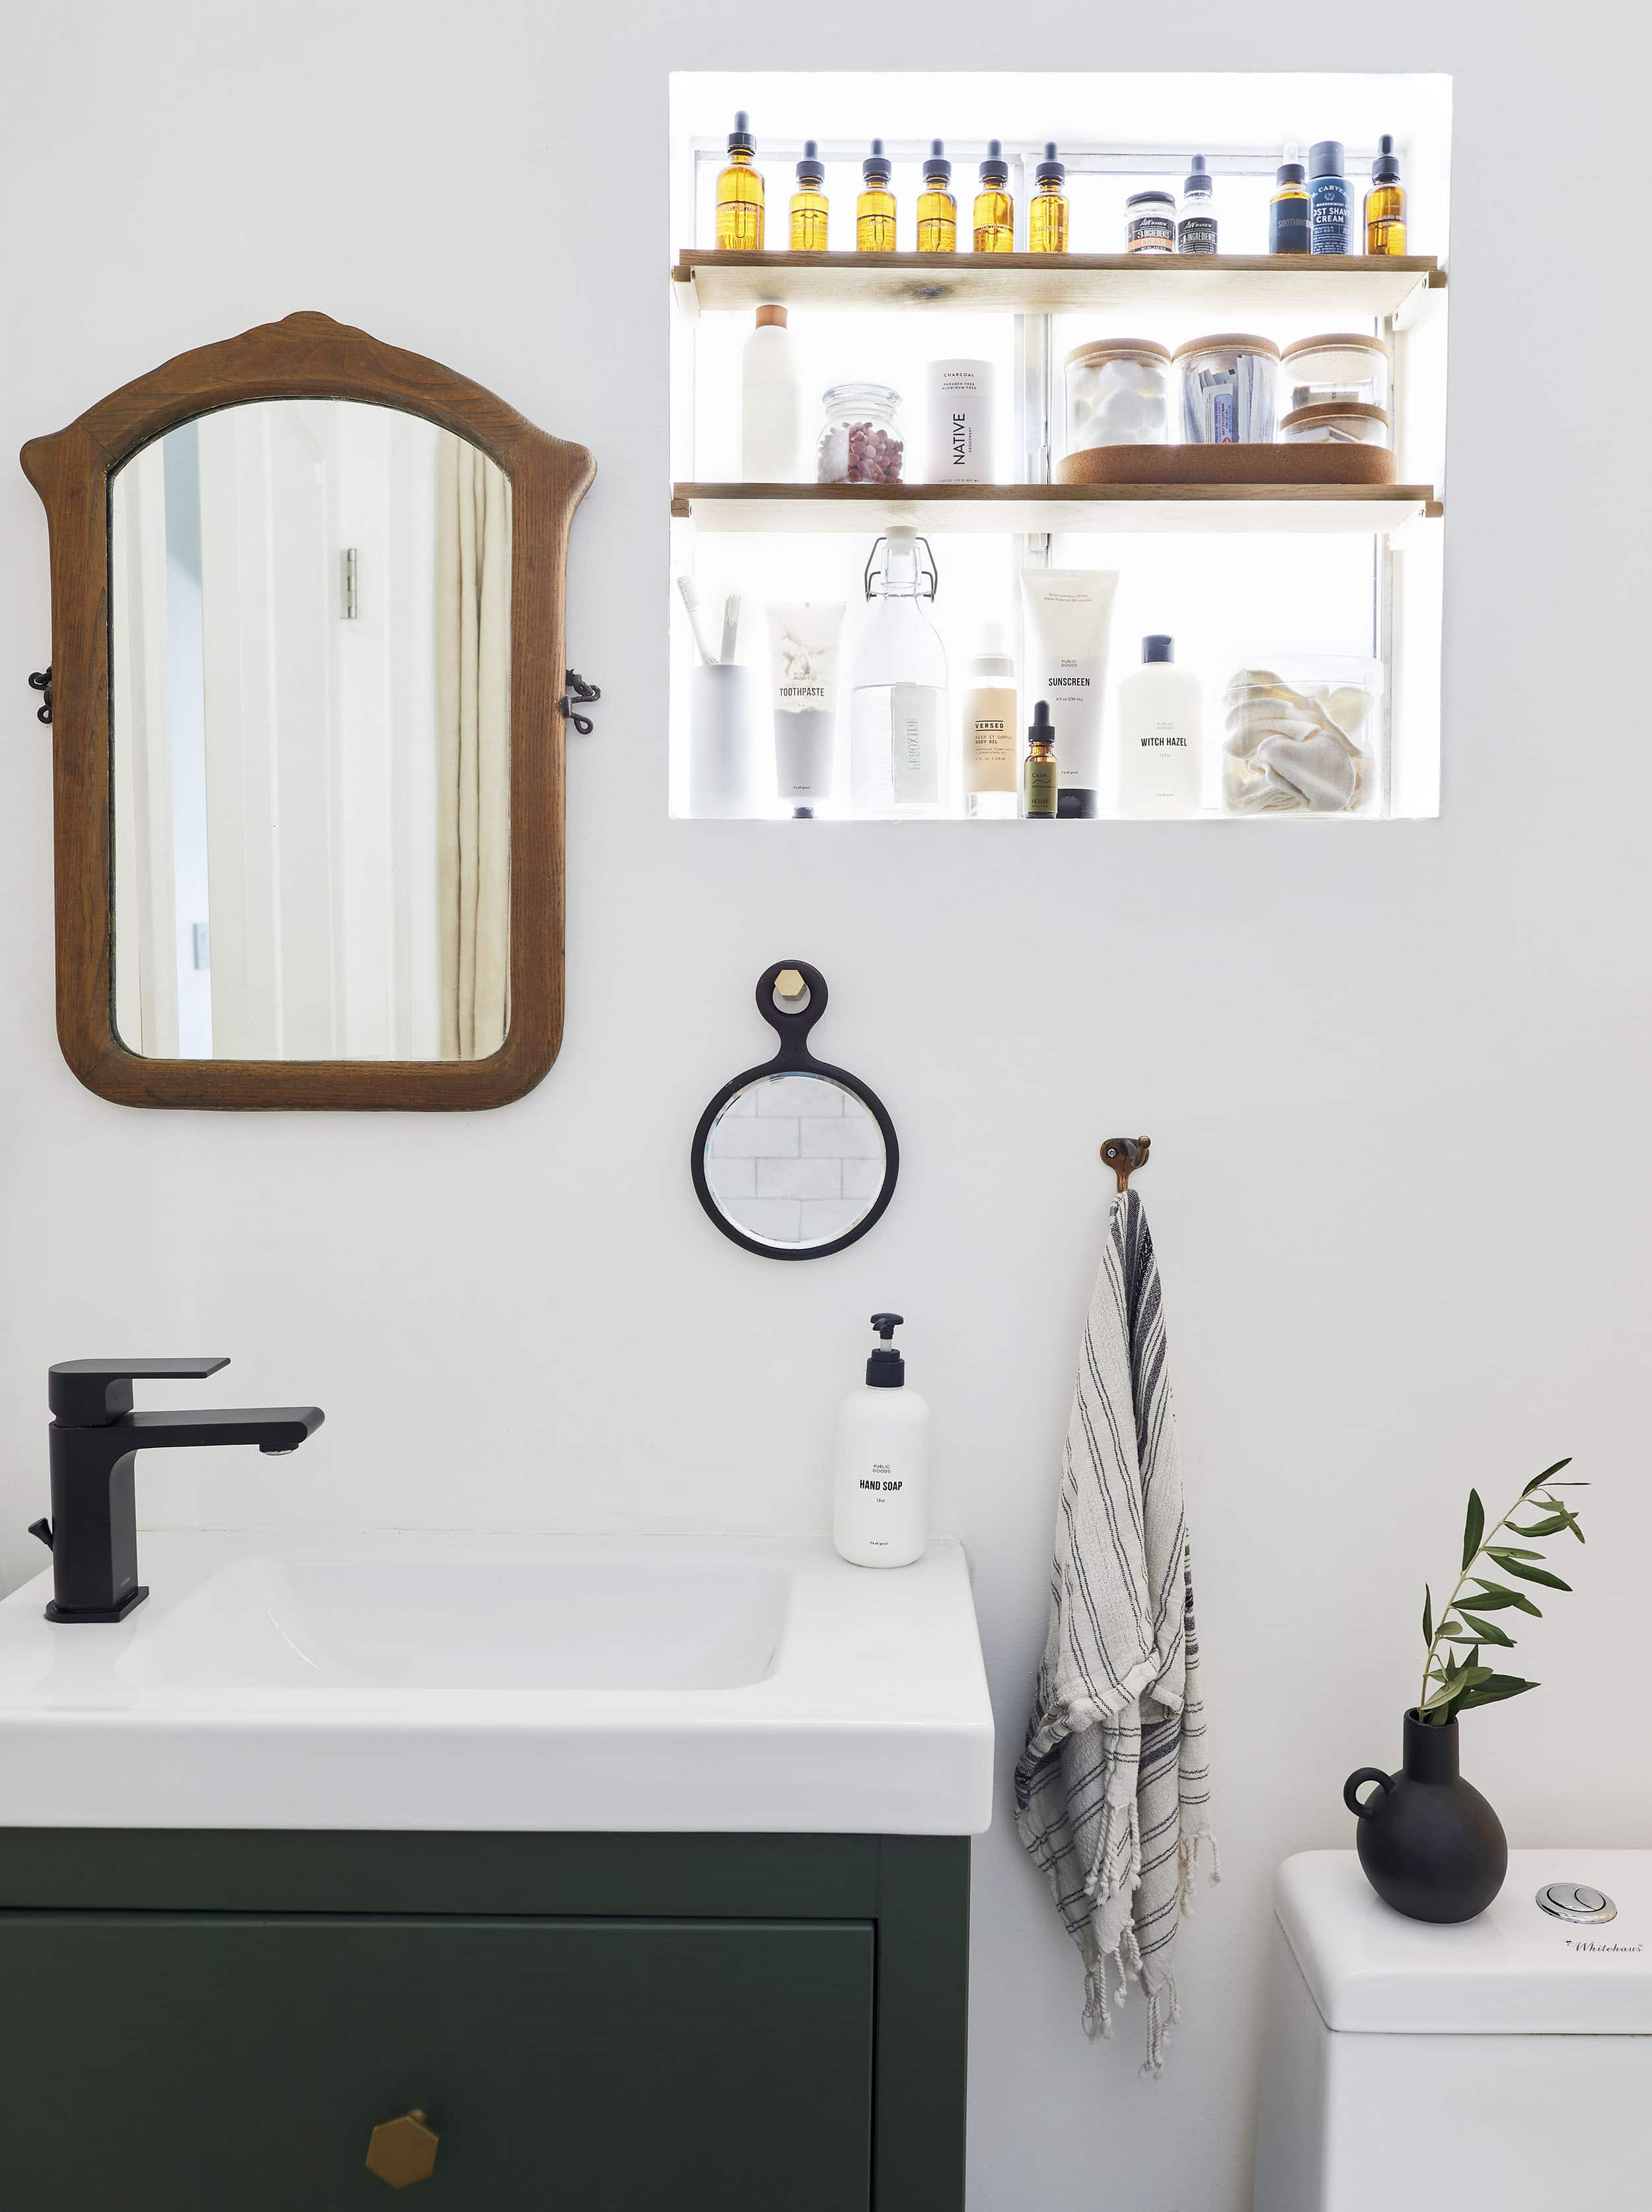 Moto Reveal Emily Bowser S 32 Square Foot Bathroom Is Packed With Small Space Hacks Emily Henderson